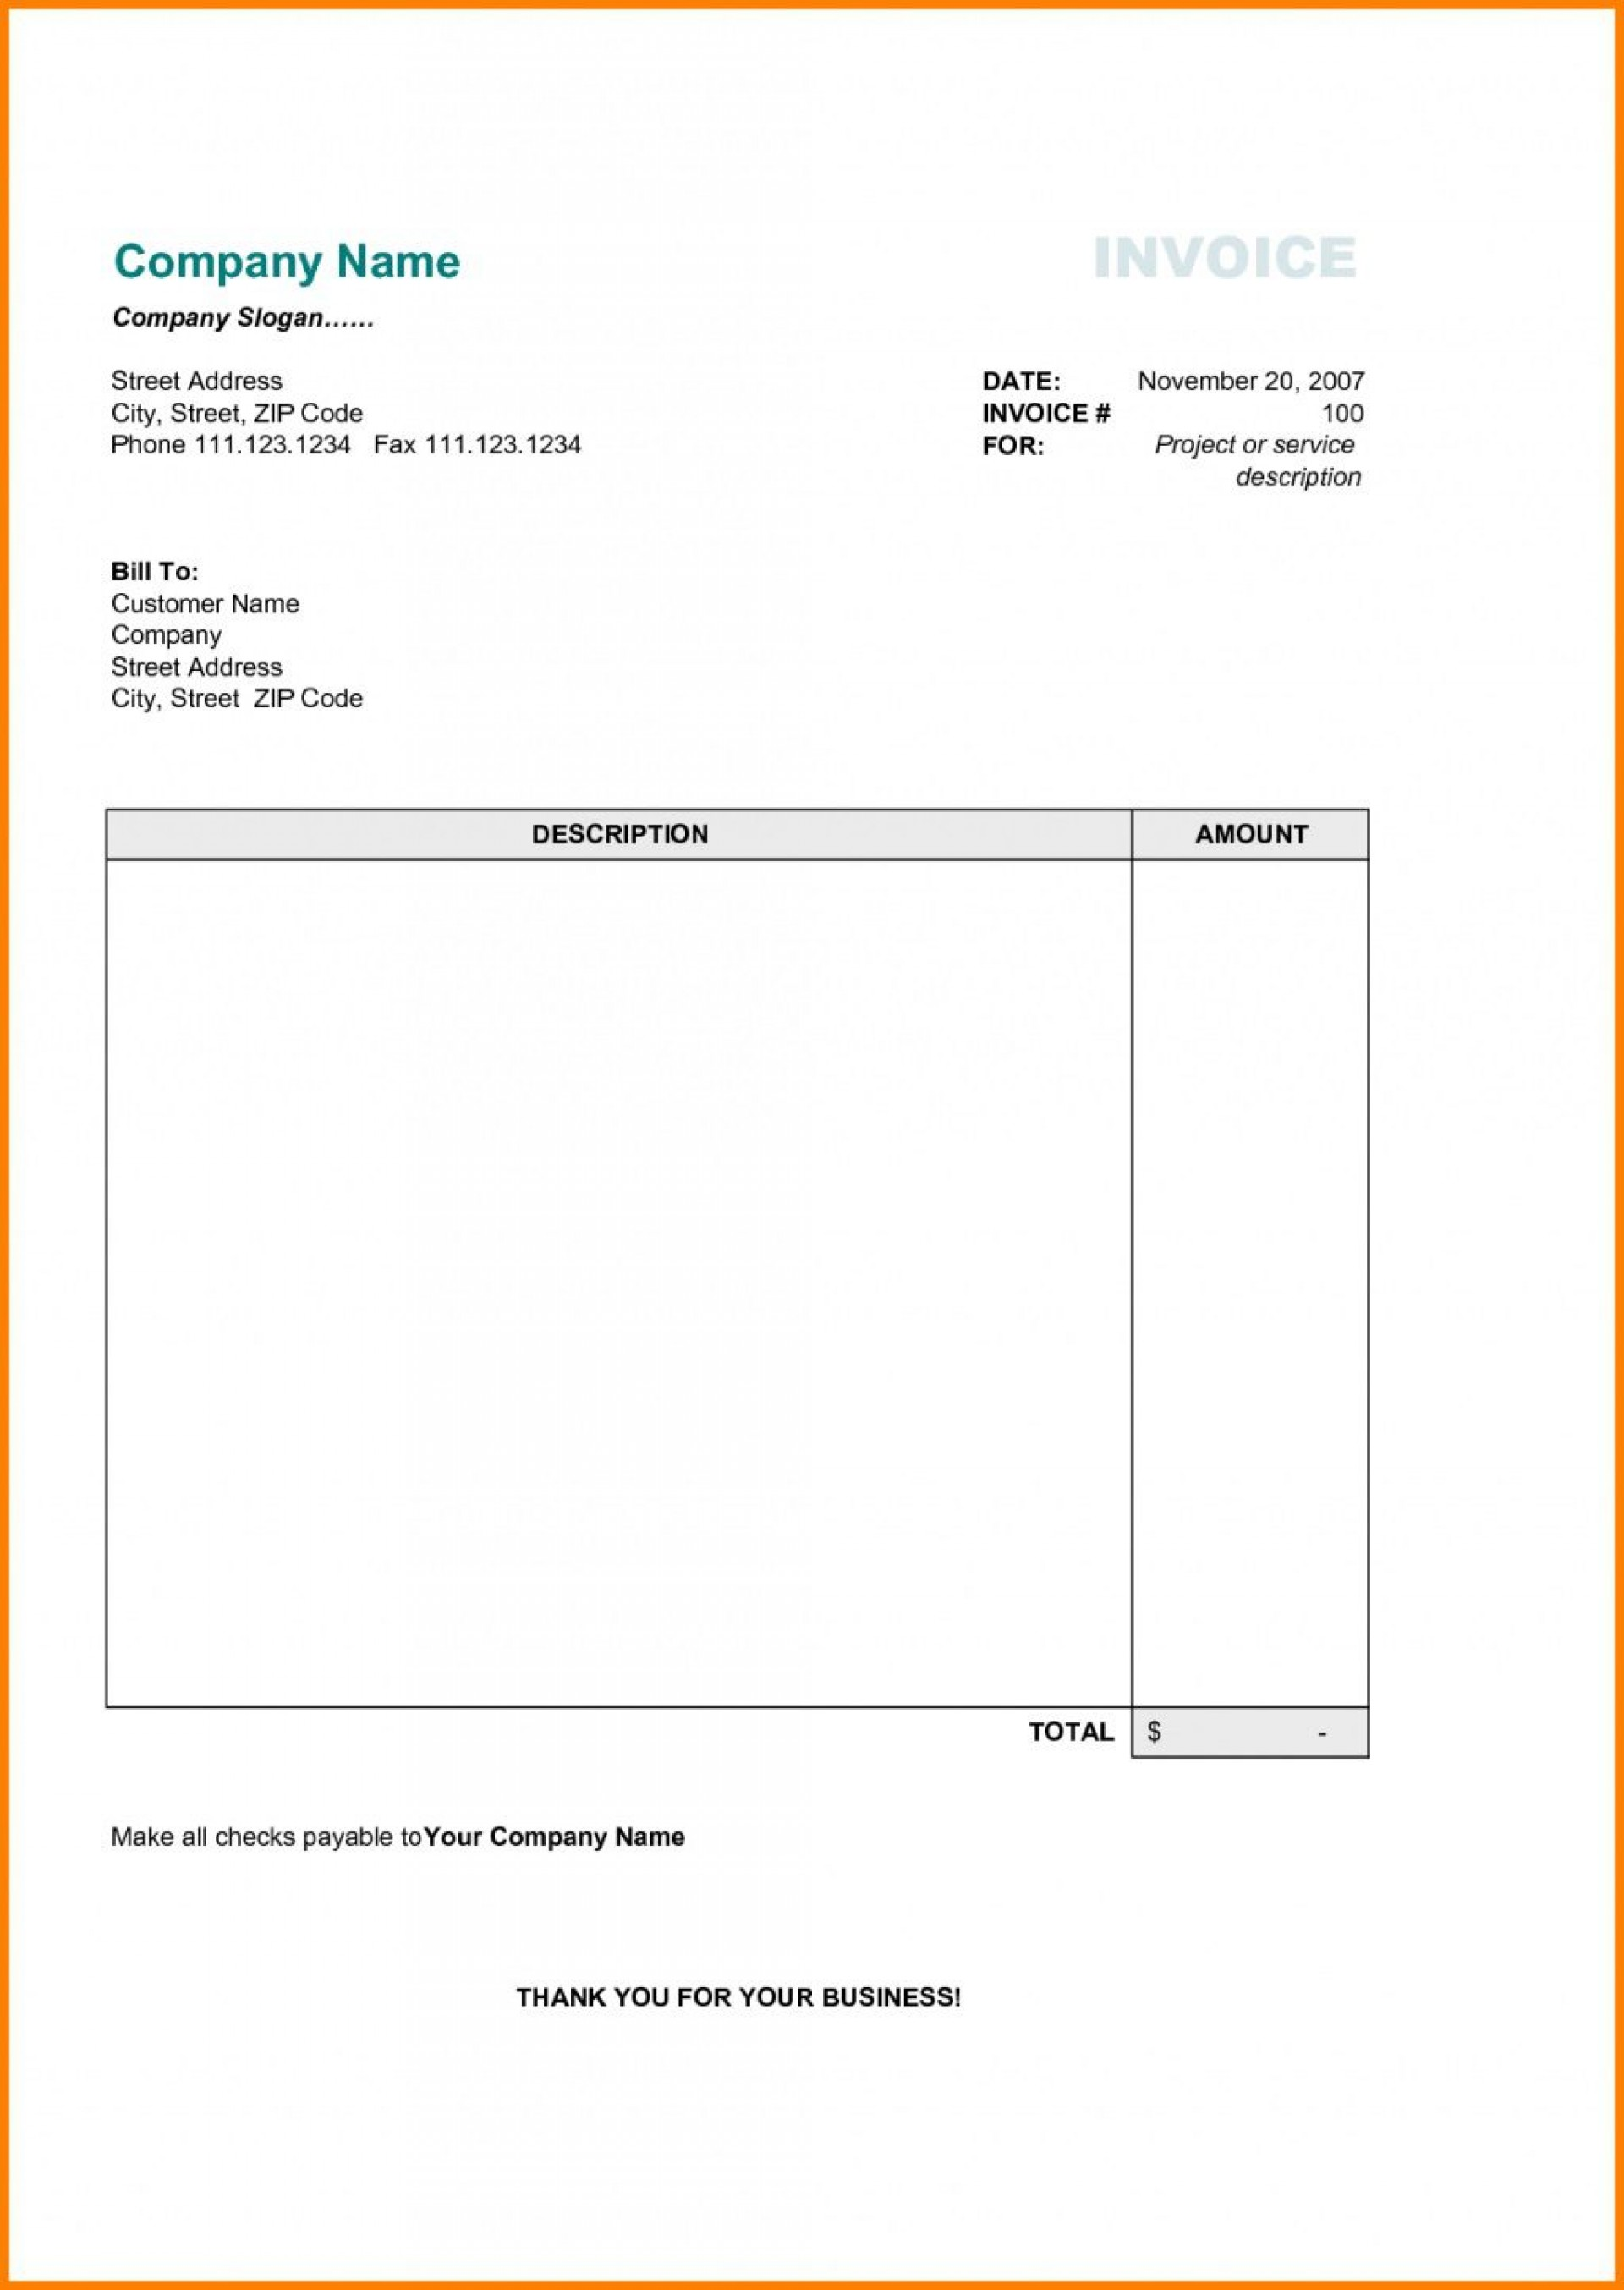 002 Incredible Invoice Template For Word Example  Download Blank Free1920